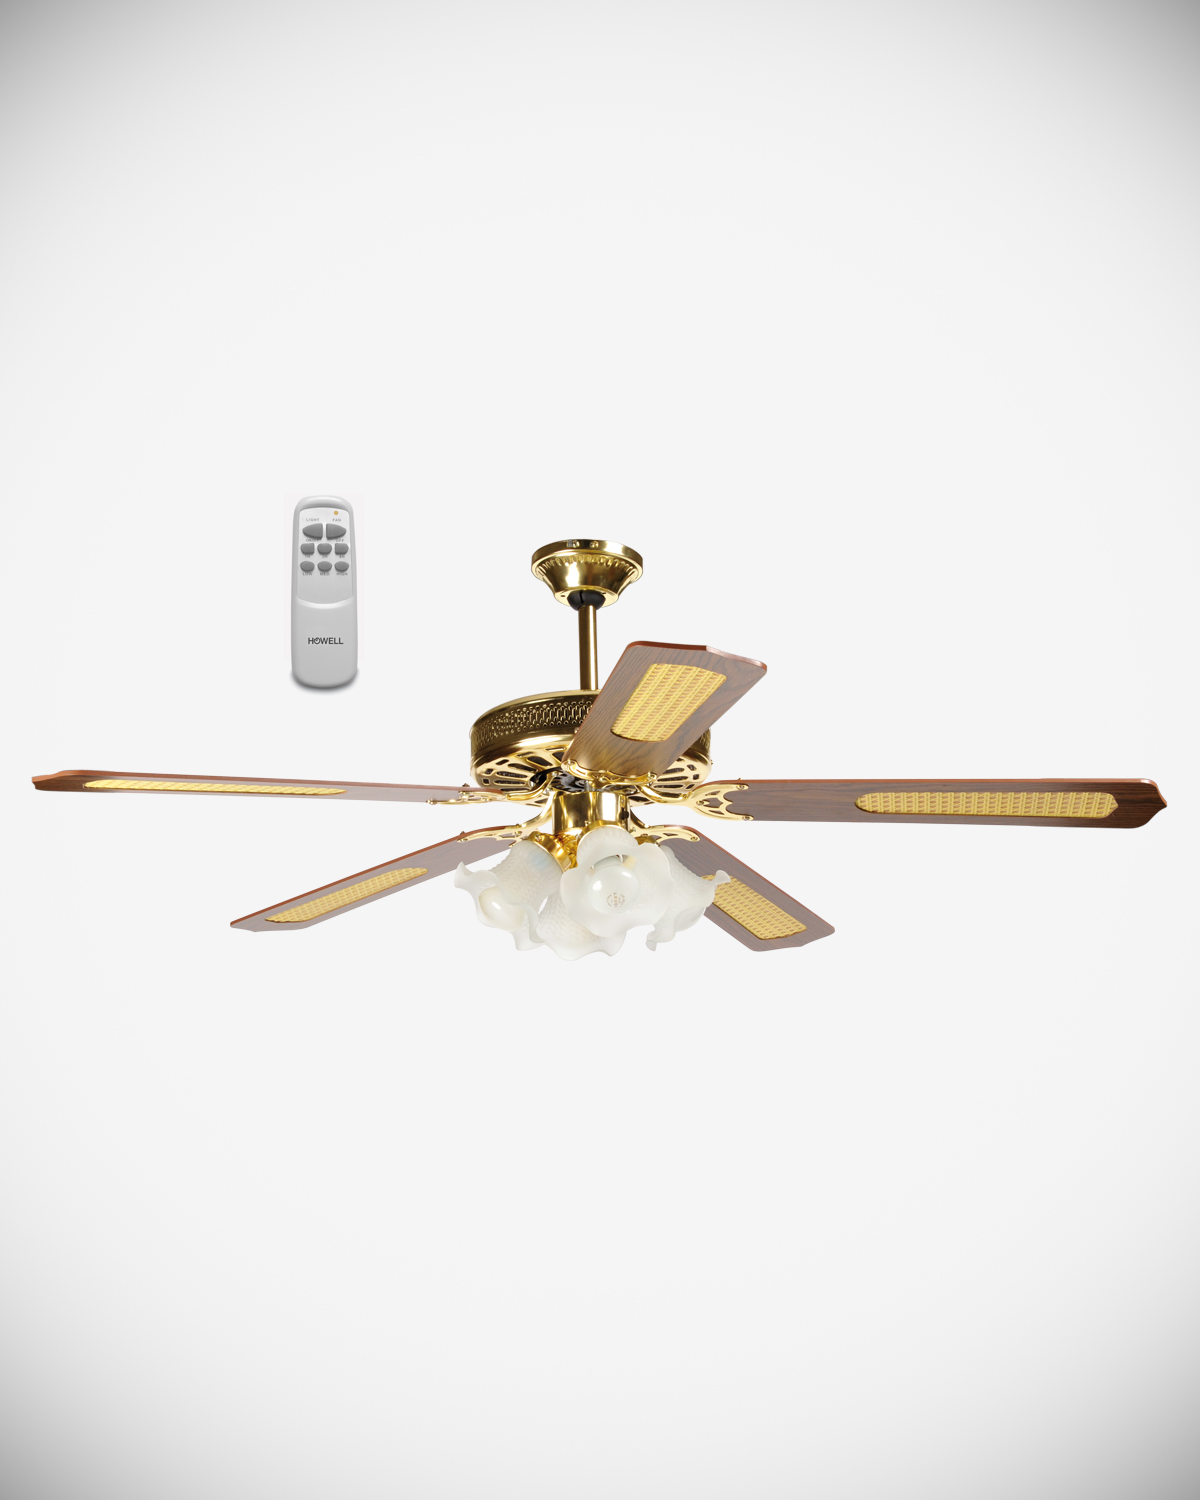 Ceiling fan with remote control HO.VSR14045